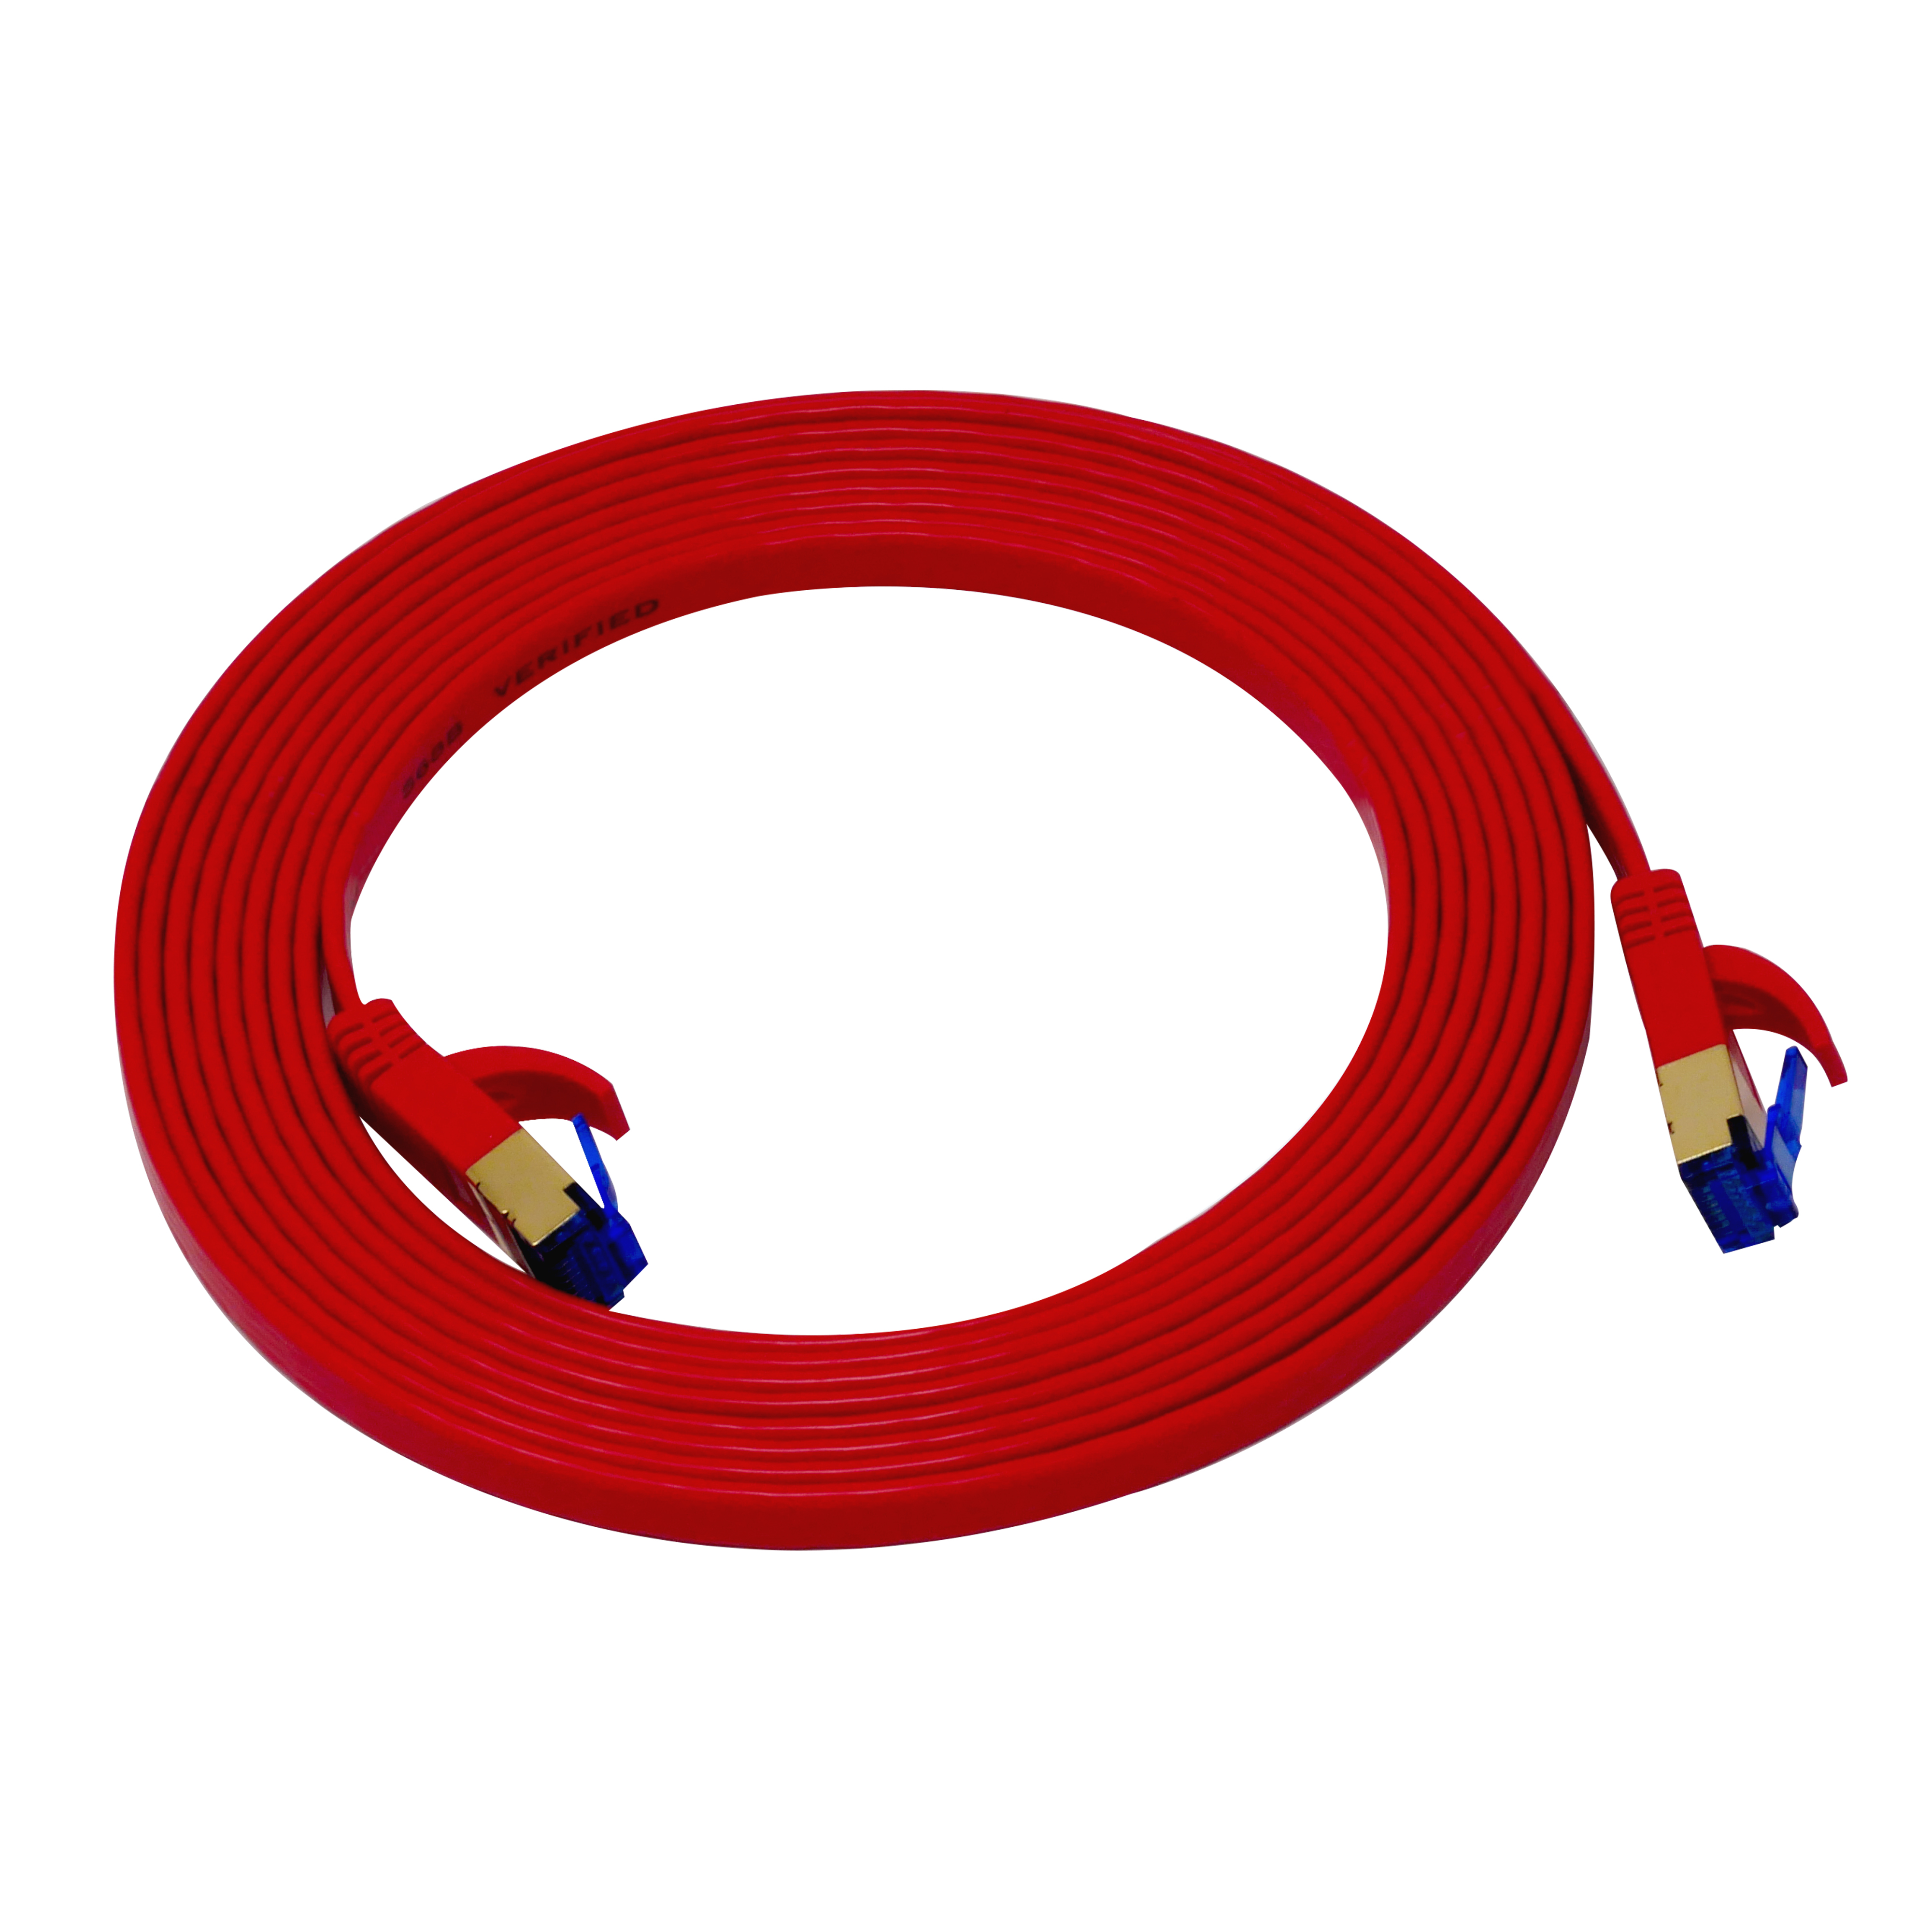 QualGear QG-CAT7F-10FT-RED CAT 7 S/FTP Ethernet Cable Length 10 feet - 26 AWG, 10 Gbps, Gold Plated Contacts, RJ45, 99.99% OFC Copper, Color Red